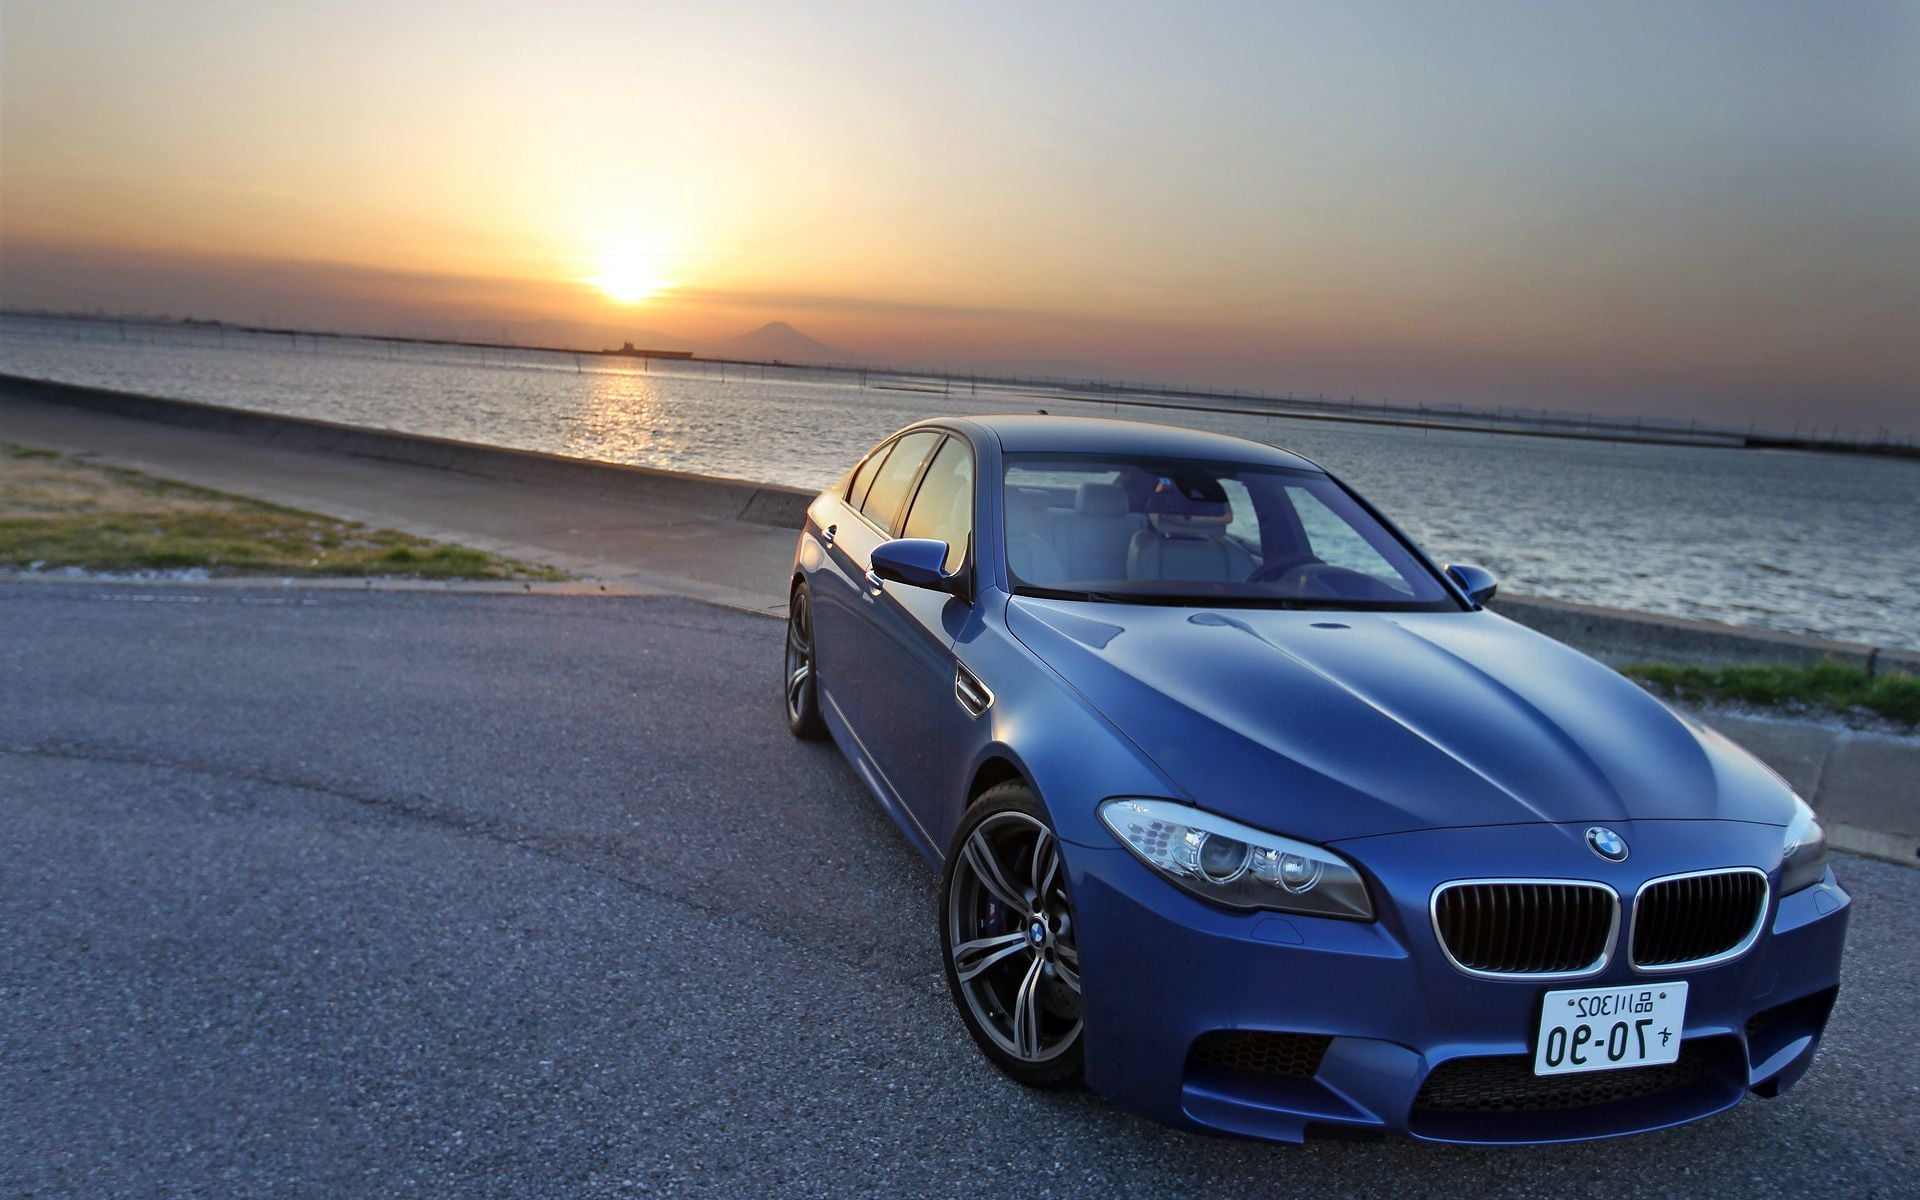 Hq Car Wallpapers 36 Bmw M5 F10 Wallpapers Hd High Quality Download